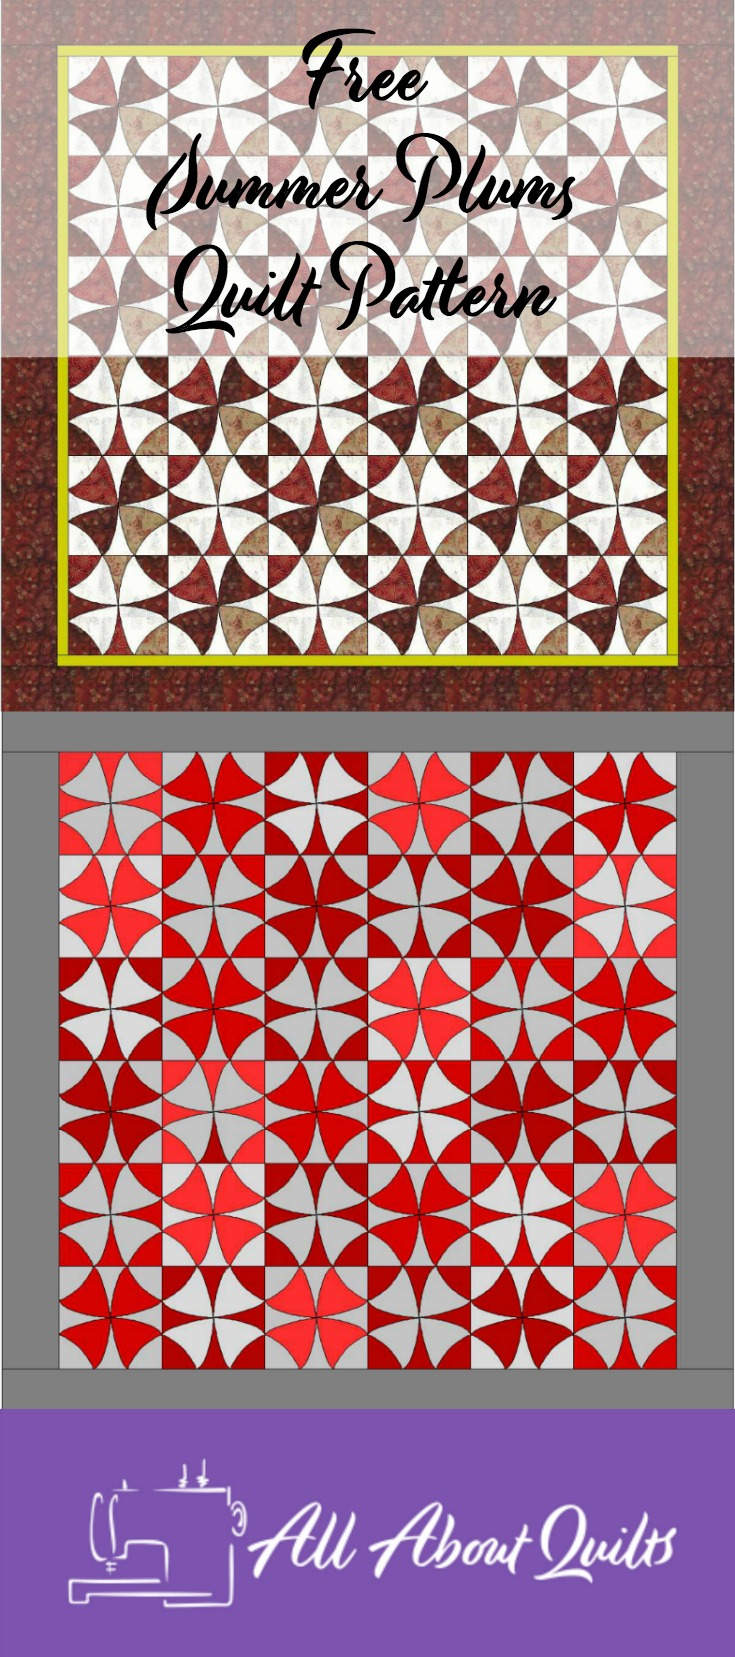 Free Summer Plums quilt pattern